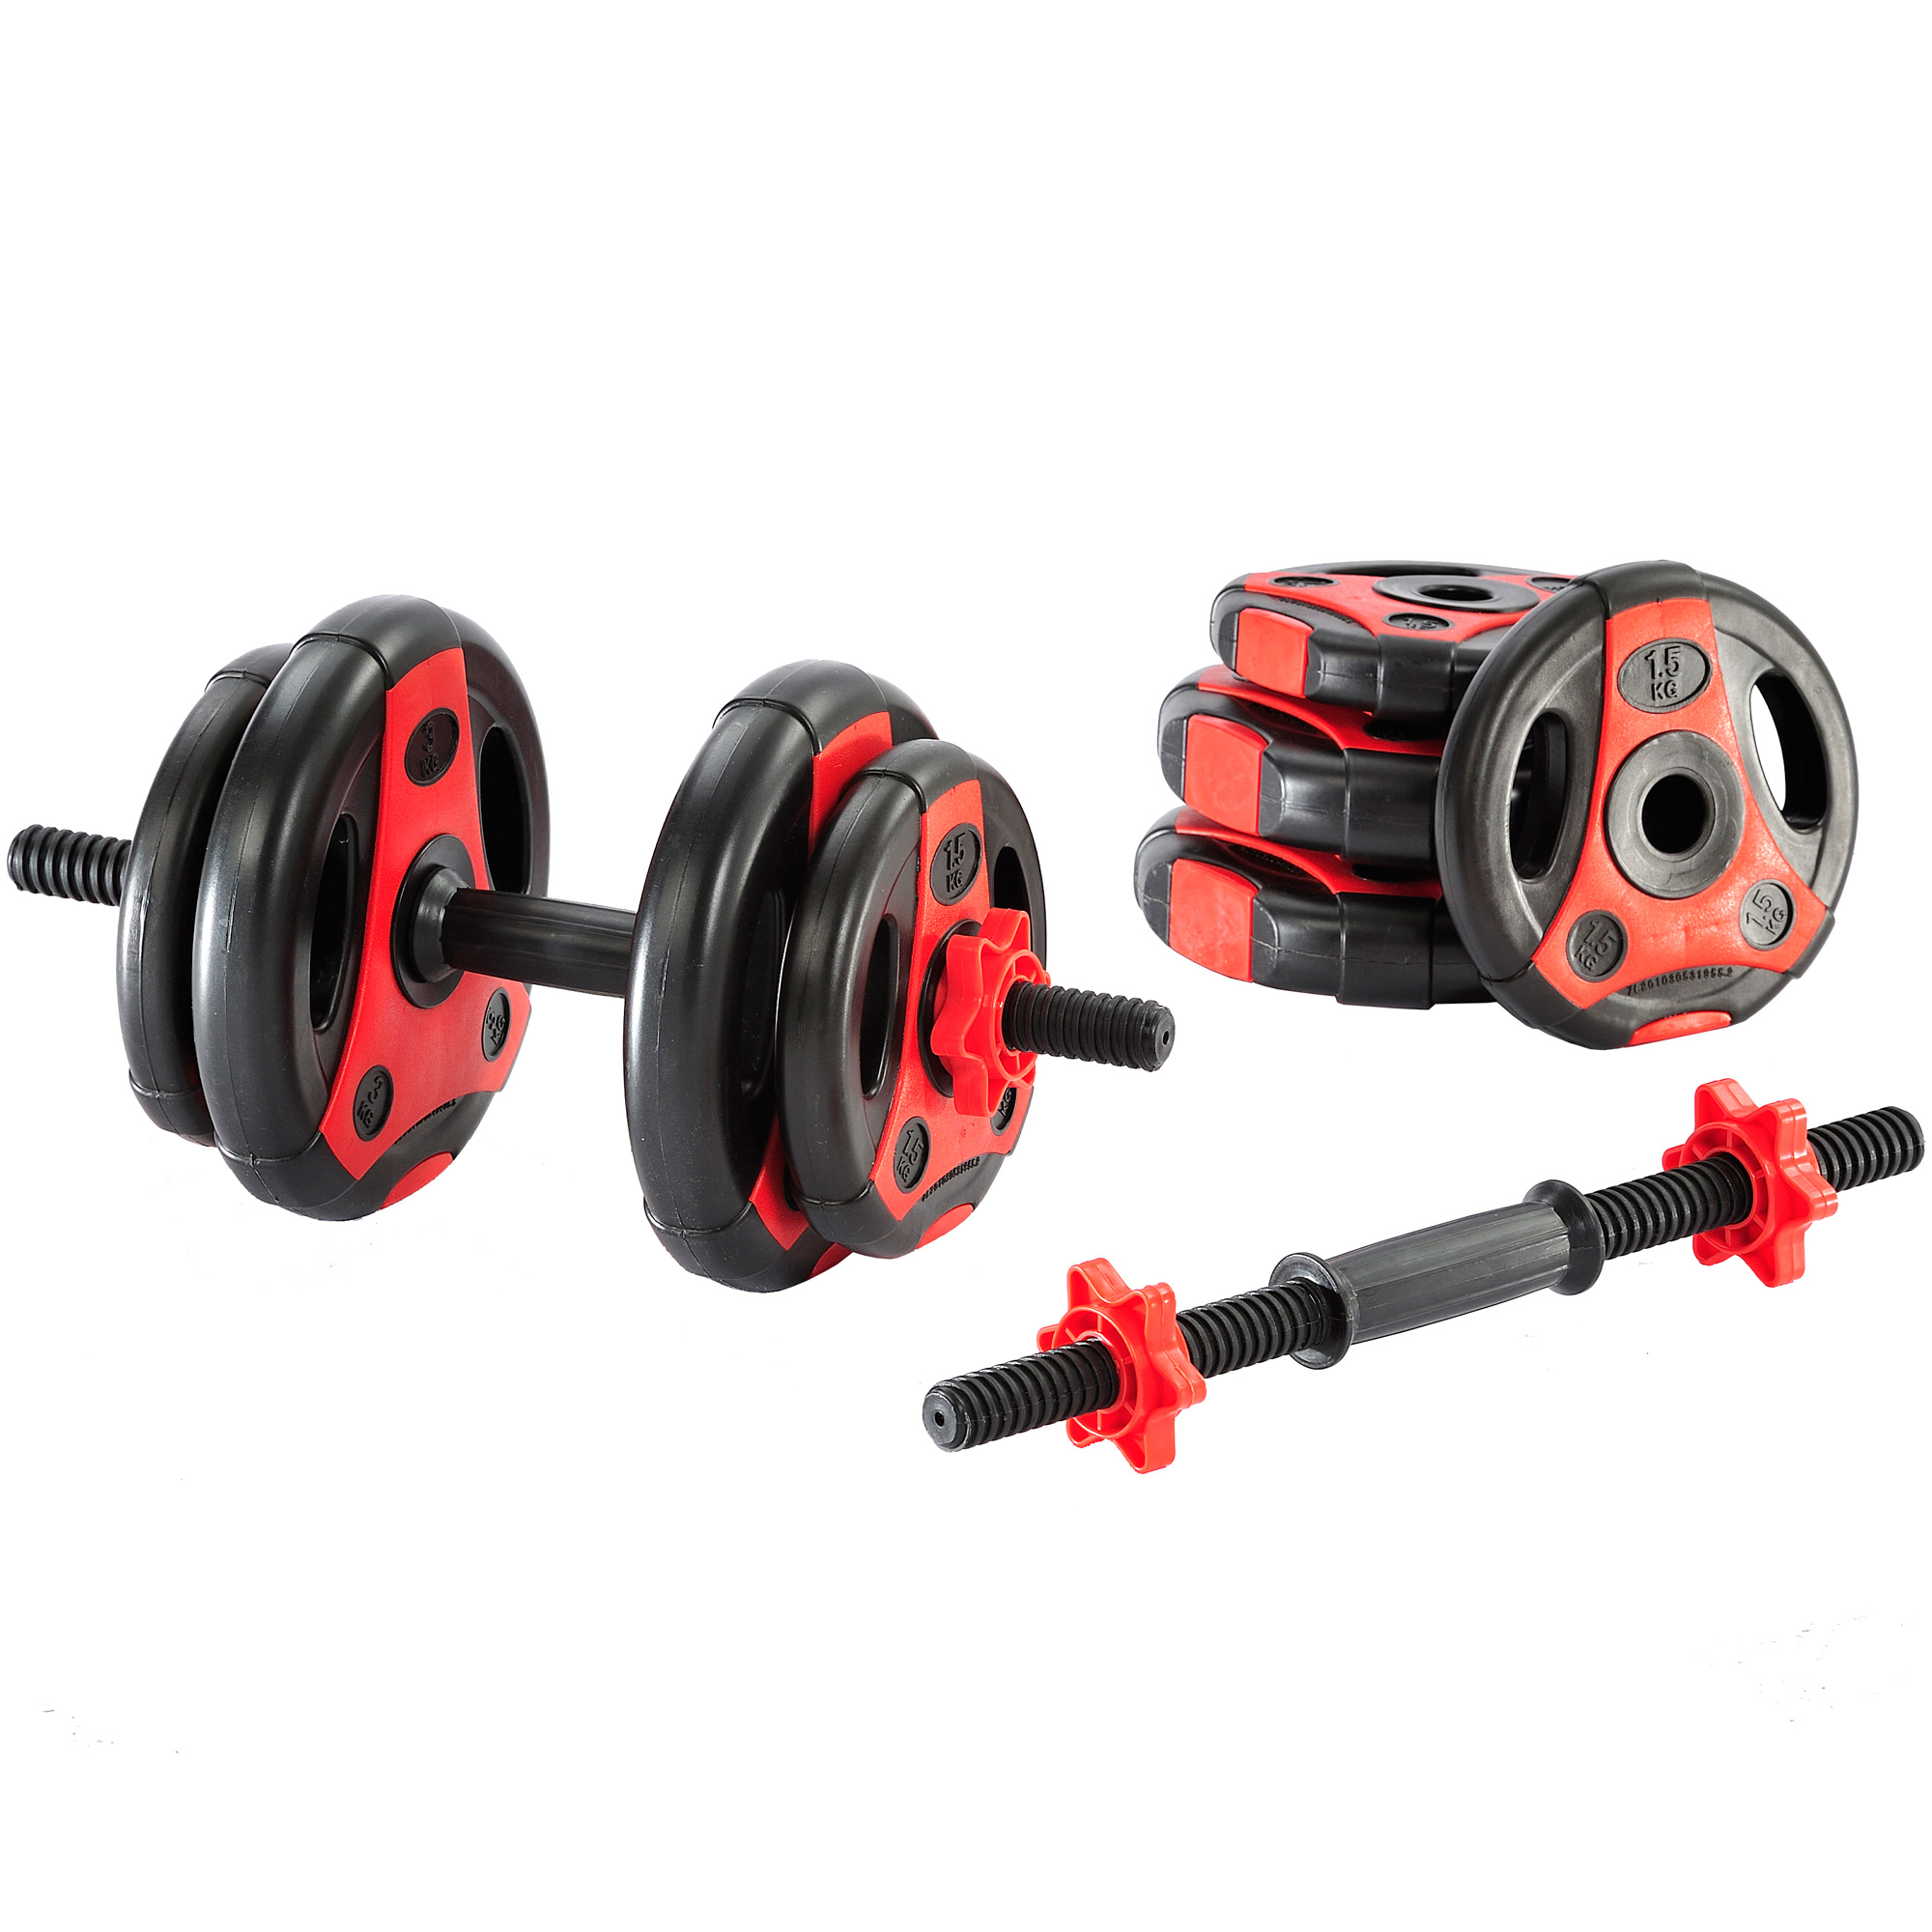 Everlast Adjustable Dumbbells: Buy Cheap Dumbbell Weights